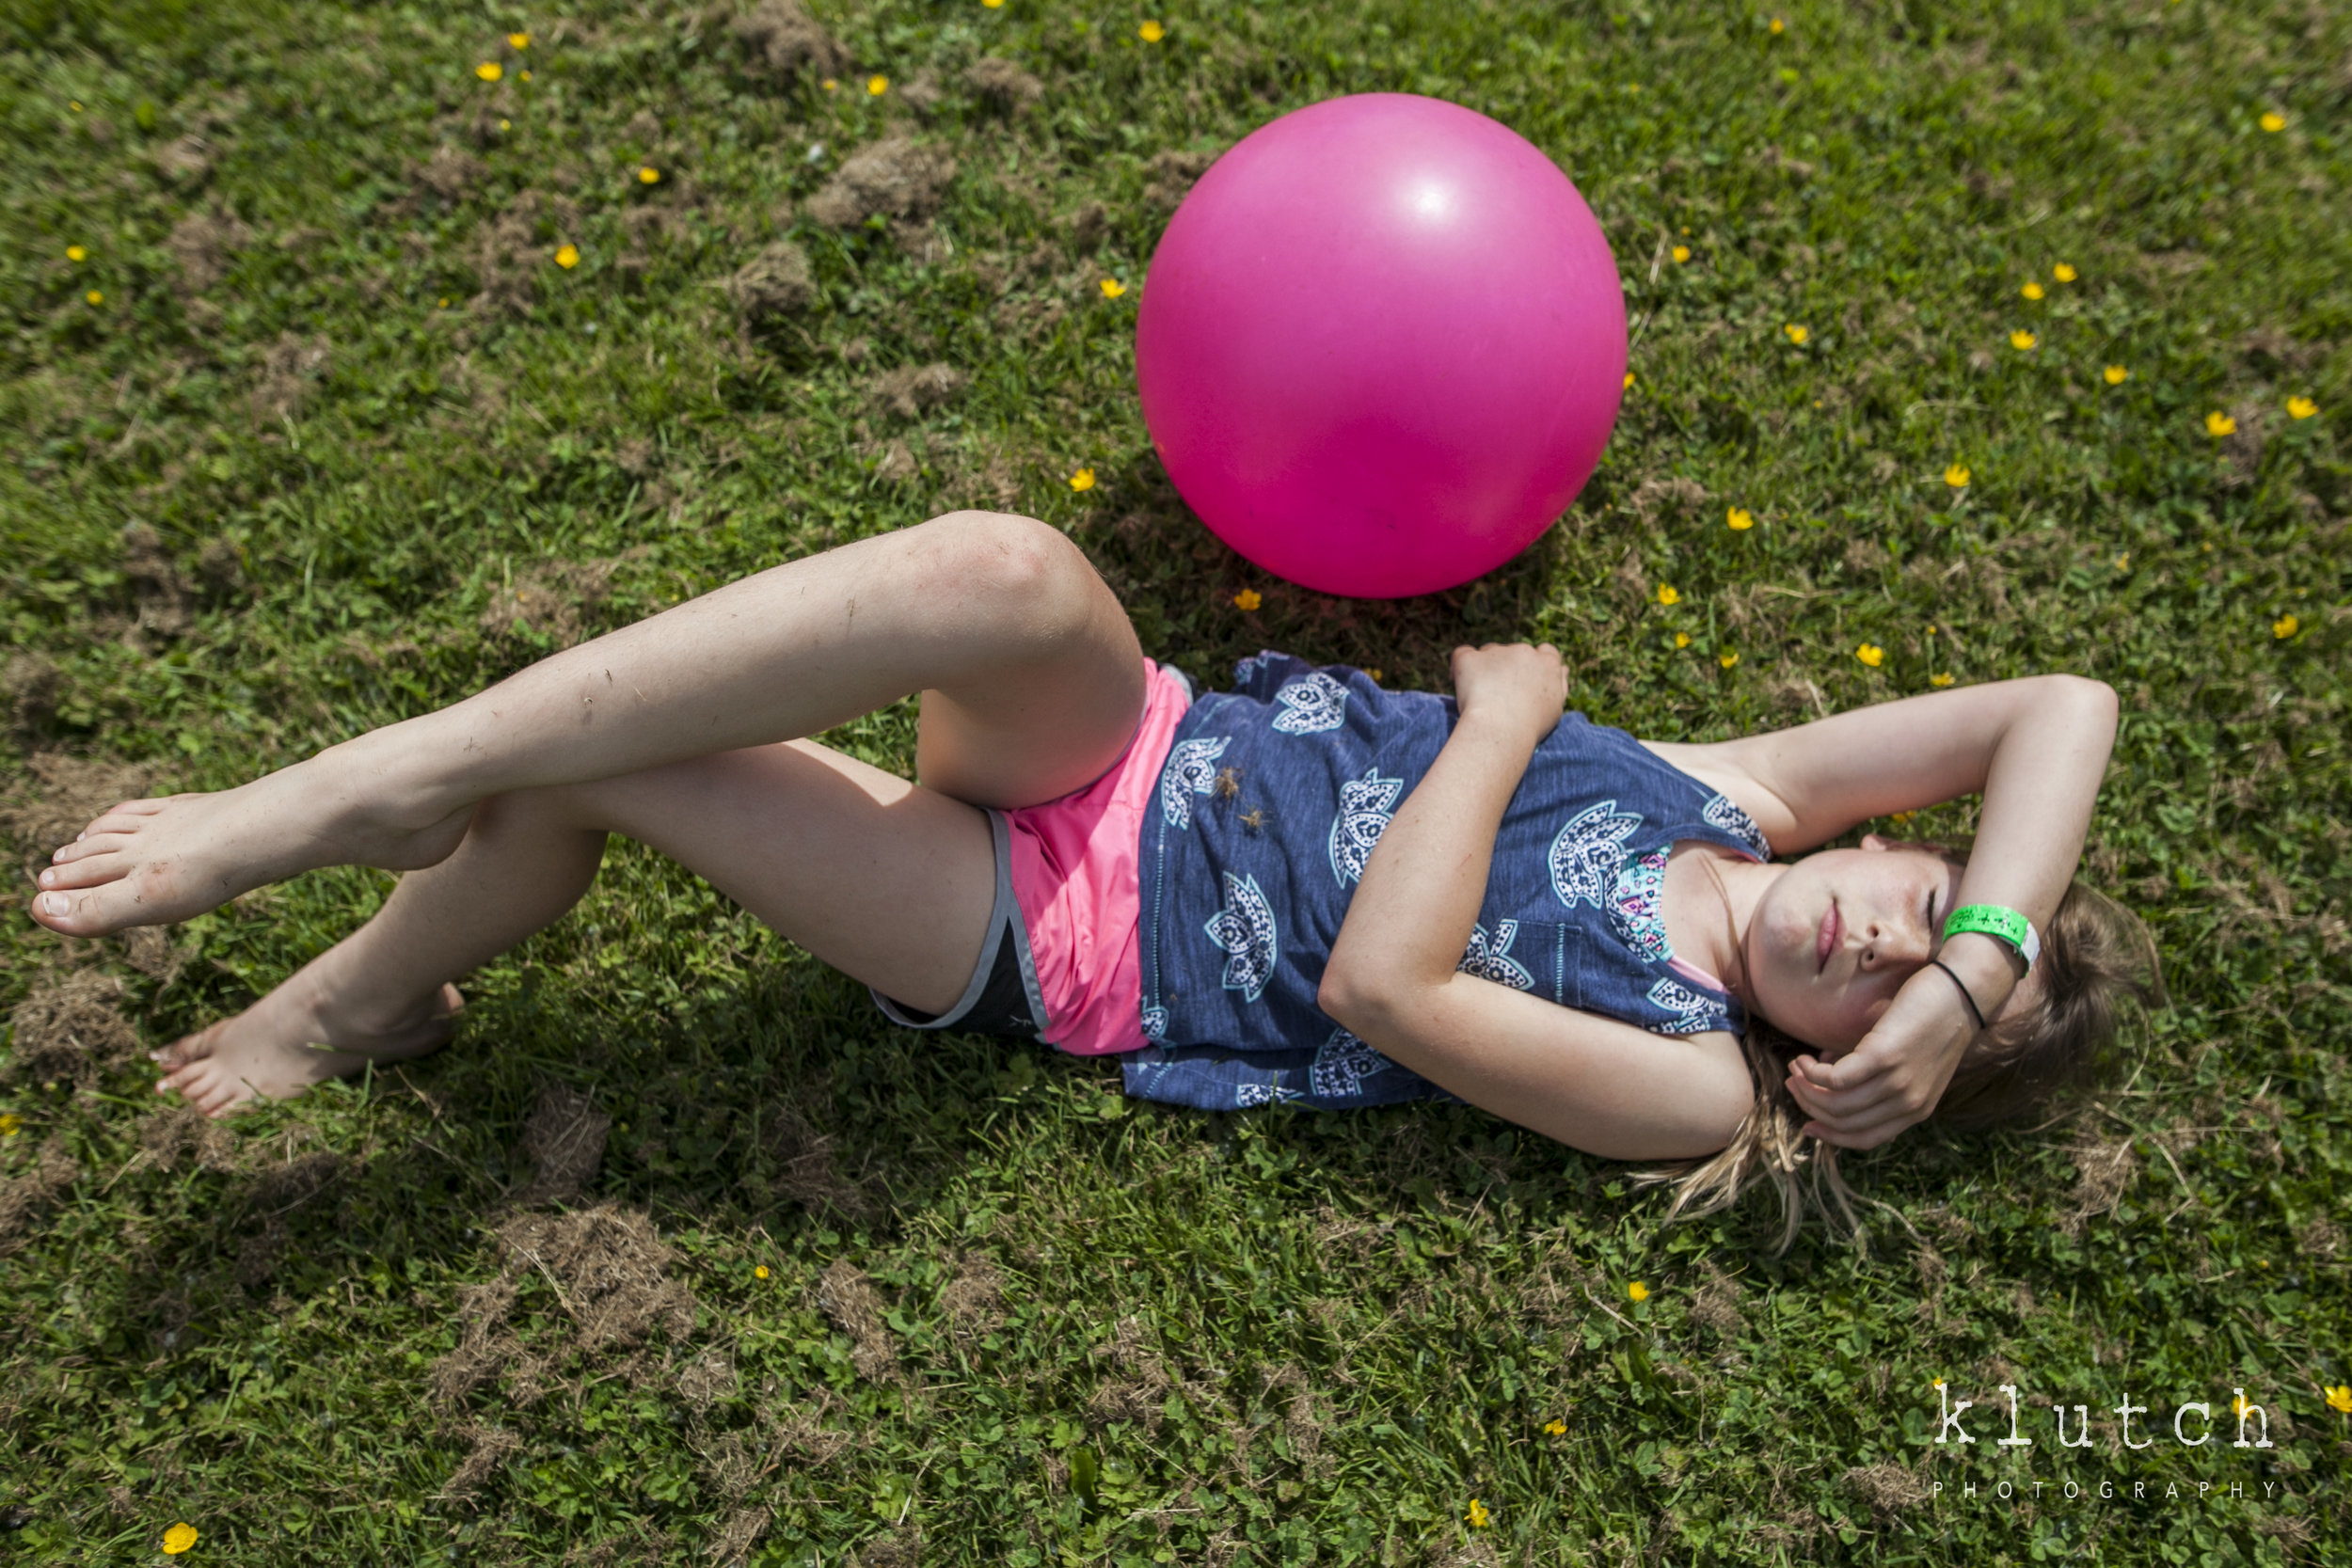 Surrey Family Photographer. Vancouver family photographer, klutch Photography, documentary photography, Vancouver documentary photographer, candid photography, lifestyle photographer, a day in the life session, family photography, Vancouver Photographer, Surrey Family Photographer, White Rock family Photographer, Dina Ferreira Stoddard, girl laying on grass with ball-5730.jpg